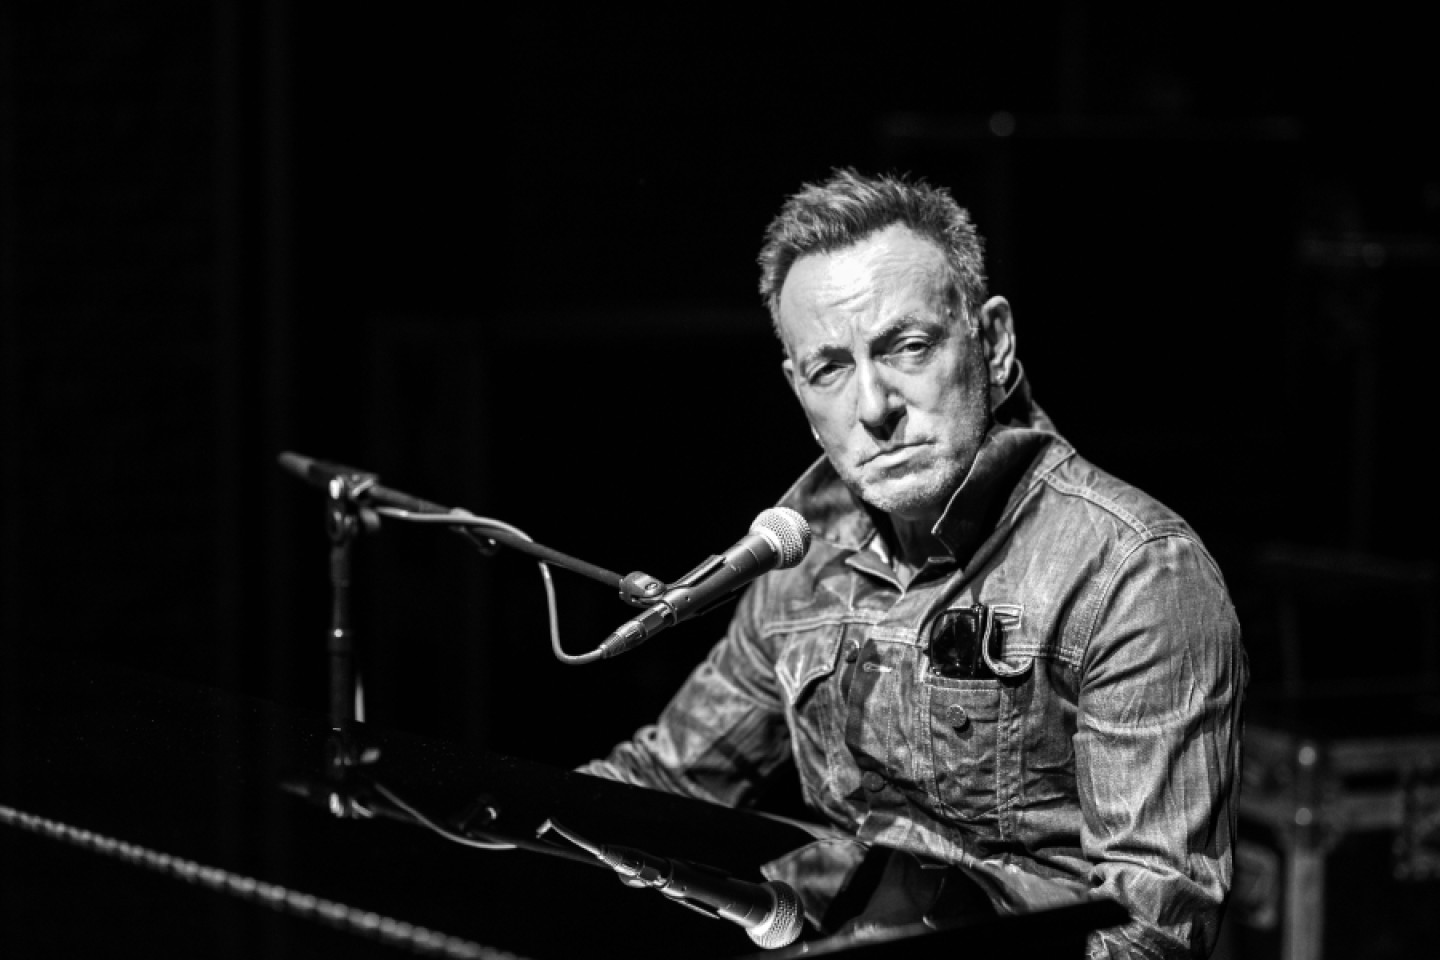 bruce-springsteen-on-broadway-opener-71eb0e79-809b-402a-8adb-1b7657e43272.jpg